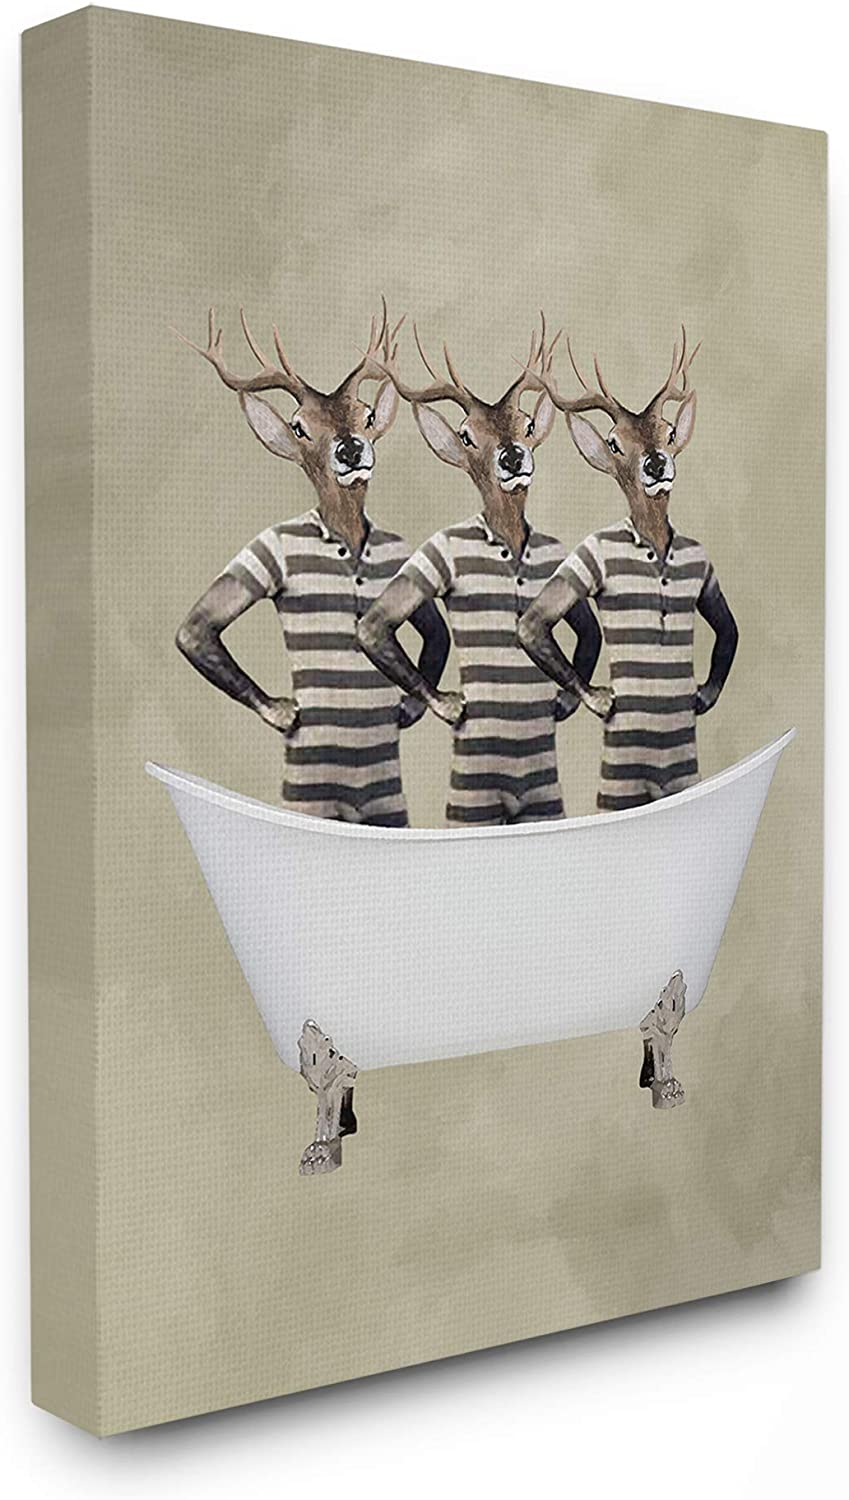 The Stupell Home Decor Three Deer Men in a Bathtub Stretched Canvas Wall Art, 16x20, Multicolor